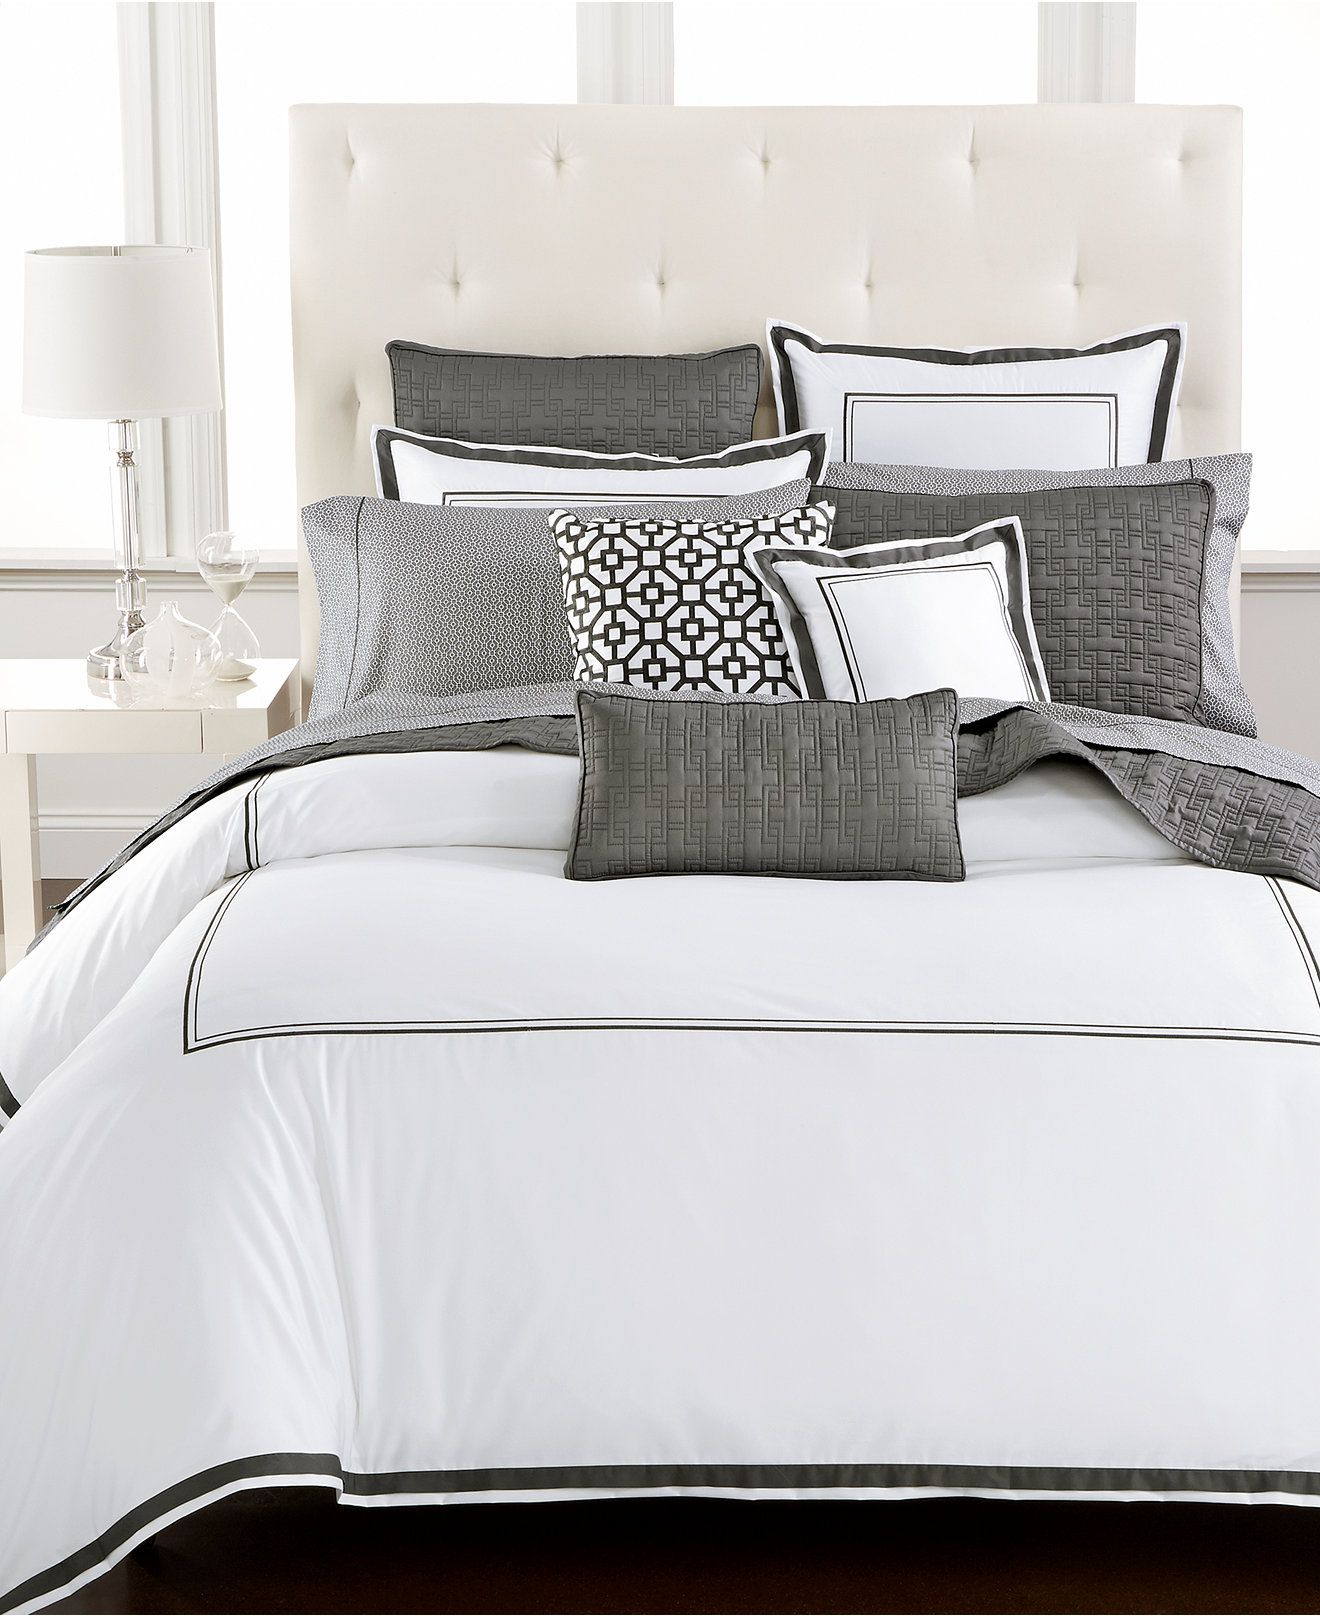 Hotel Bedrooms Collection Hotel Collection Embroidered Frame Bedding Collection Created For .